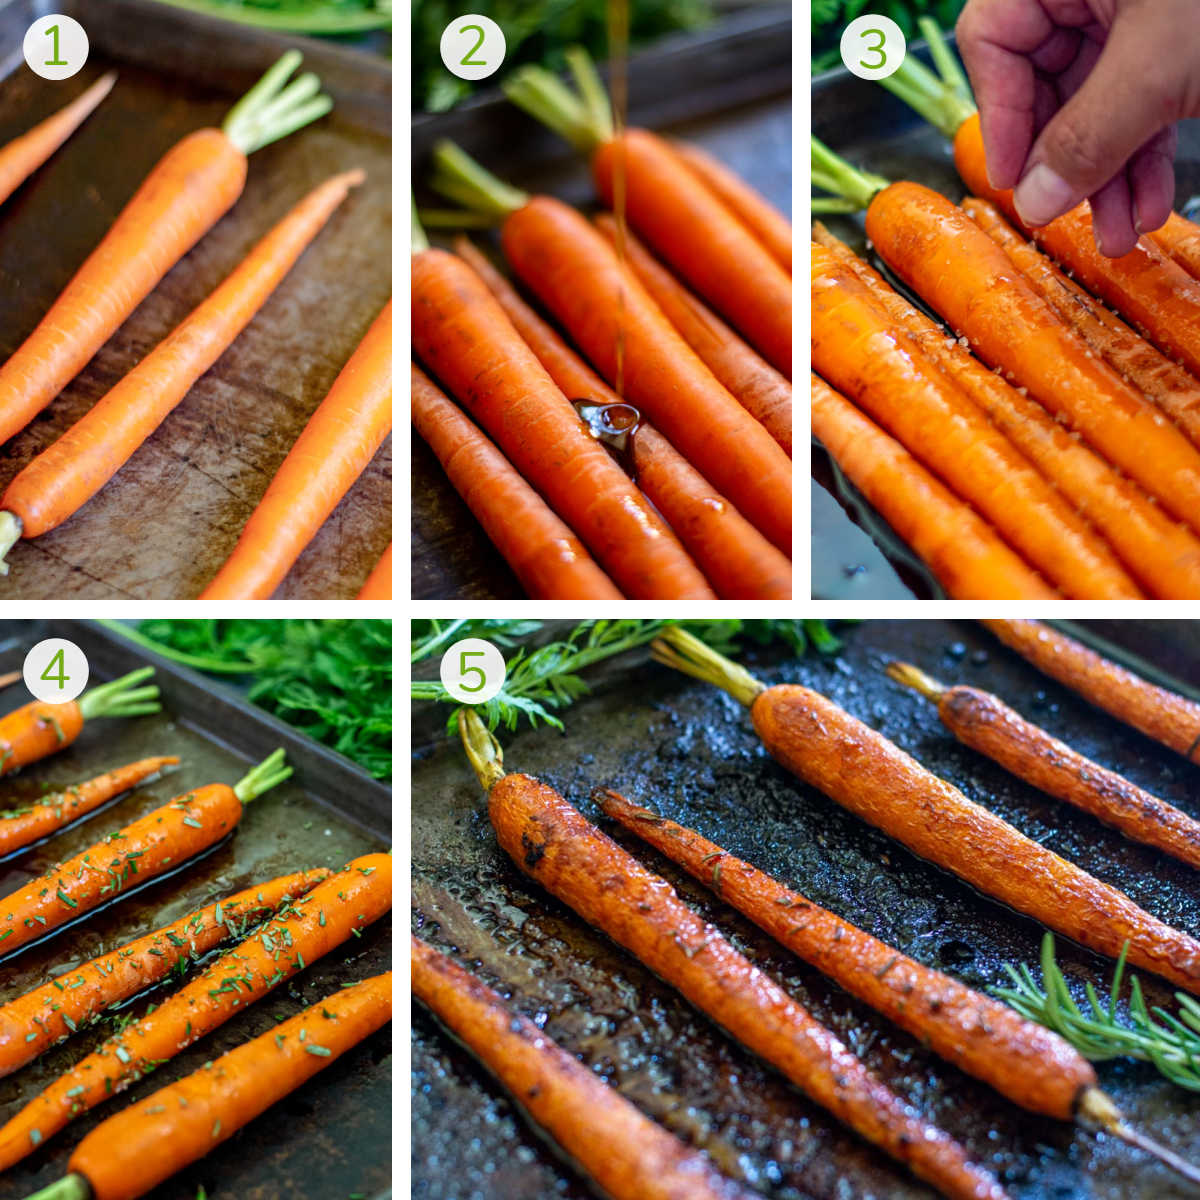 process photos showing laying out the carrots, adding honey and balsamic vinegar, sprinkling sea salt and herbs and roasting.